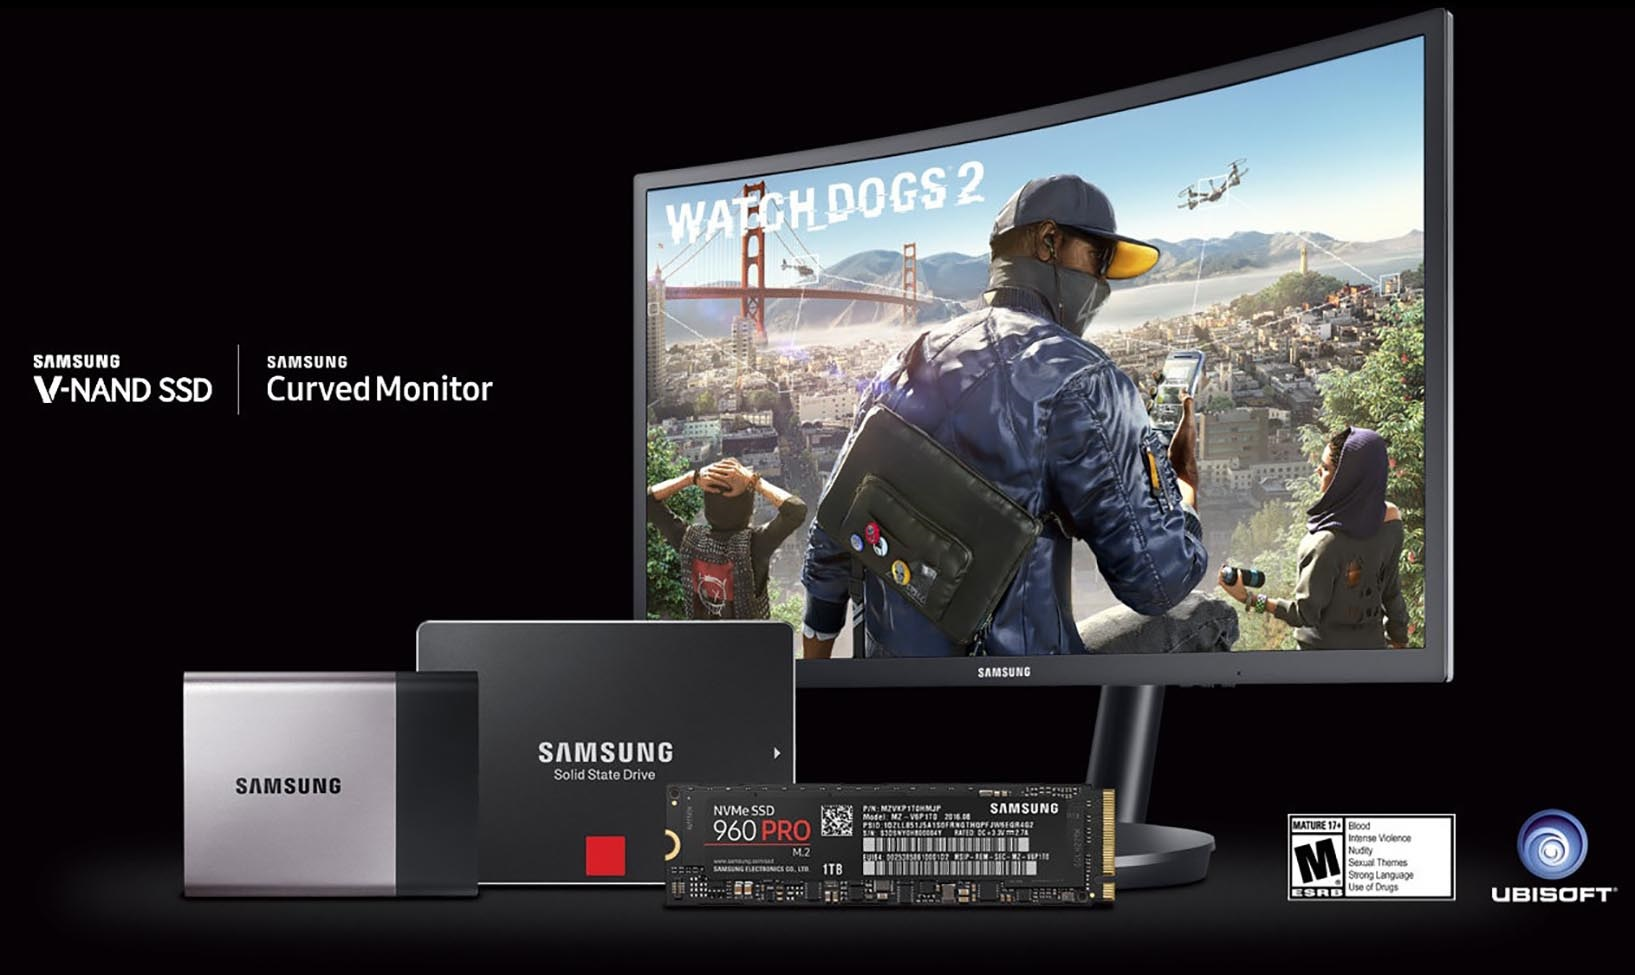 Samsung appeals to gamers with 'Watch Dogs 2' tie